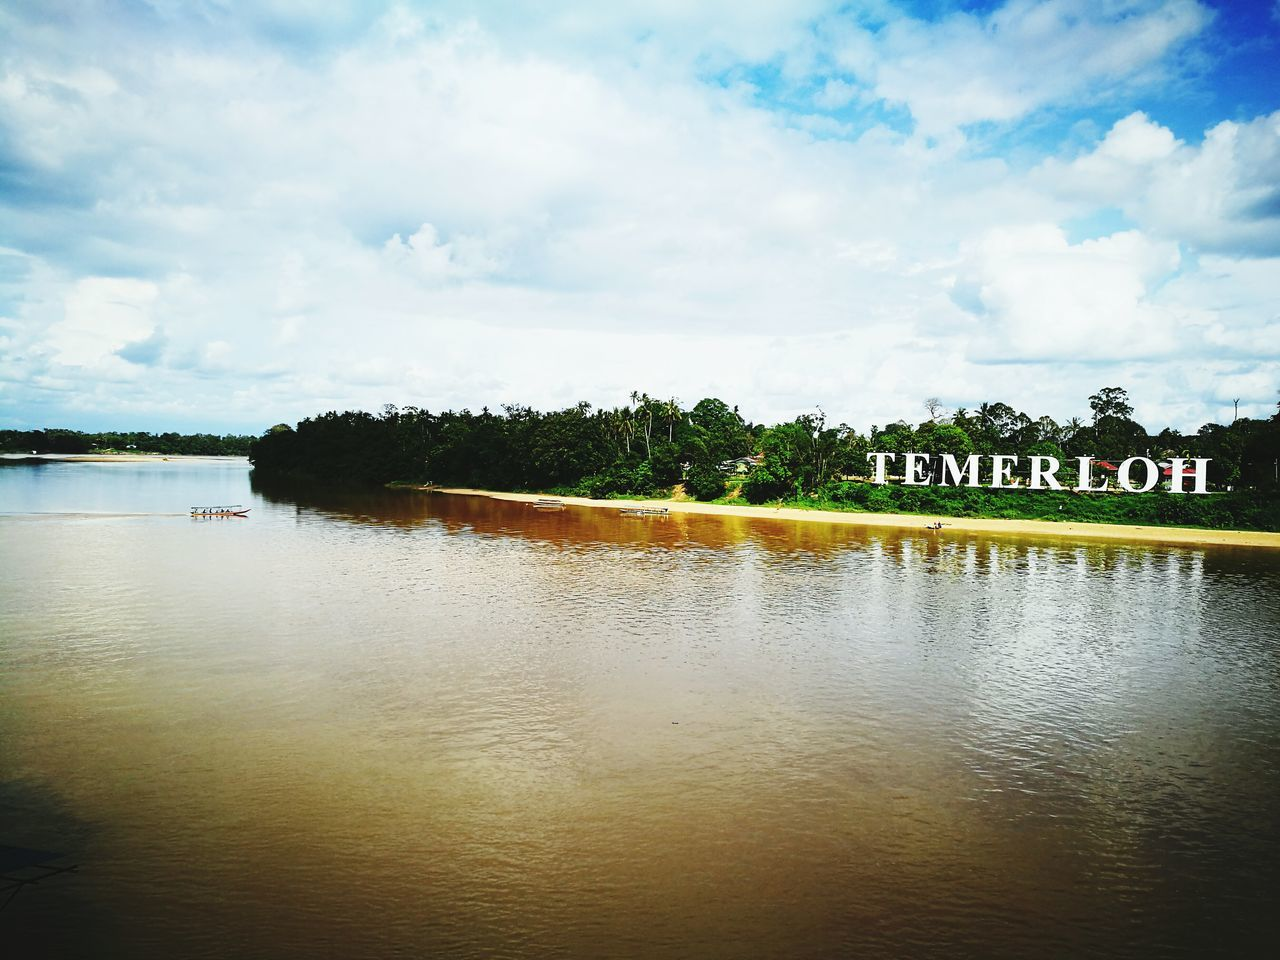 Pahang River, Temerloh Water Water Transportation Riverside Riverbank River Riverside Photography Day Sunny Day Outdoors Cloud - Sky Pahang, Malaysia Temerloh Huawei P9 Leica HuaweiP9